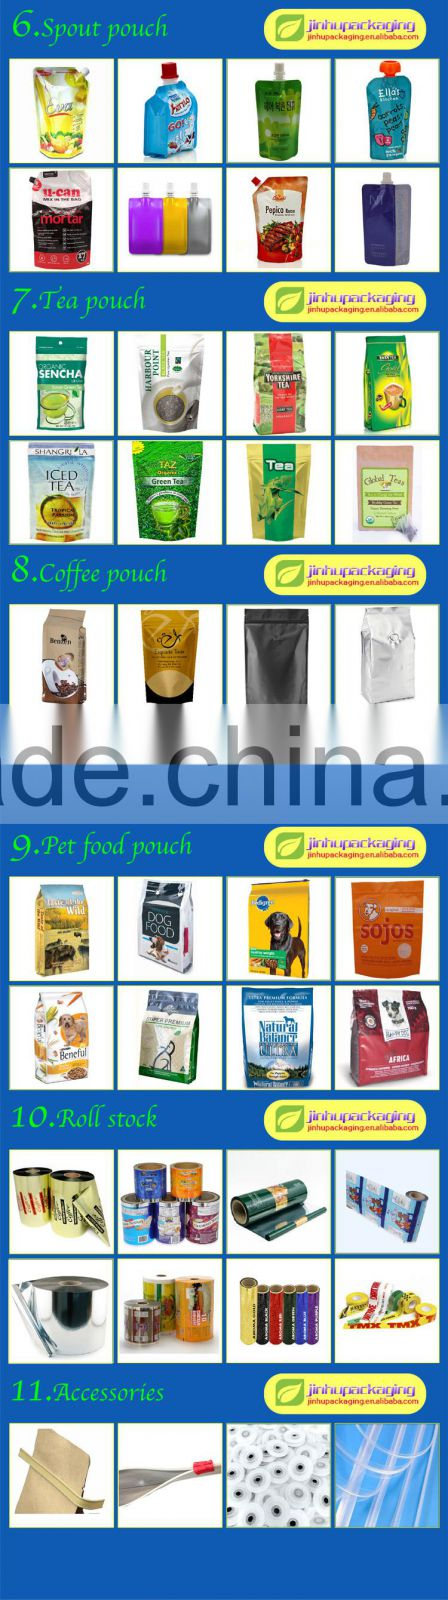 useful wicket bag food packaging materials canned food packaging machine poly bags food packaging plastic bag